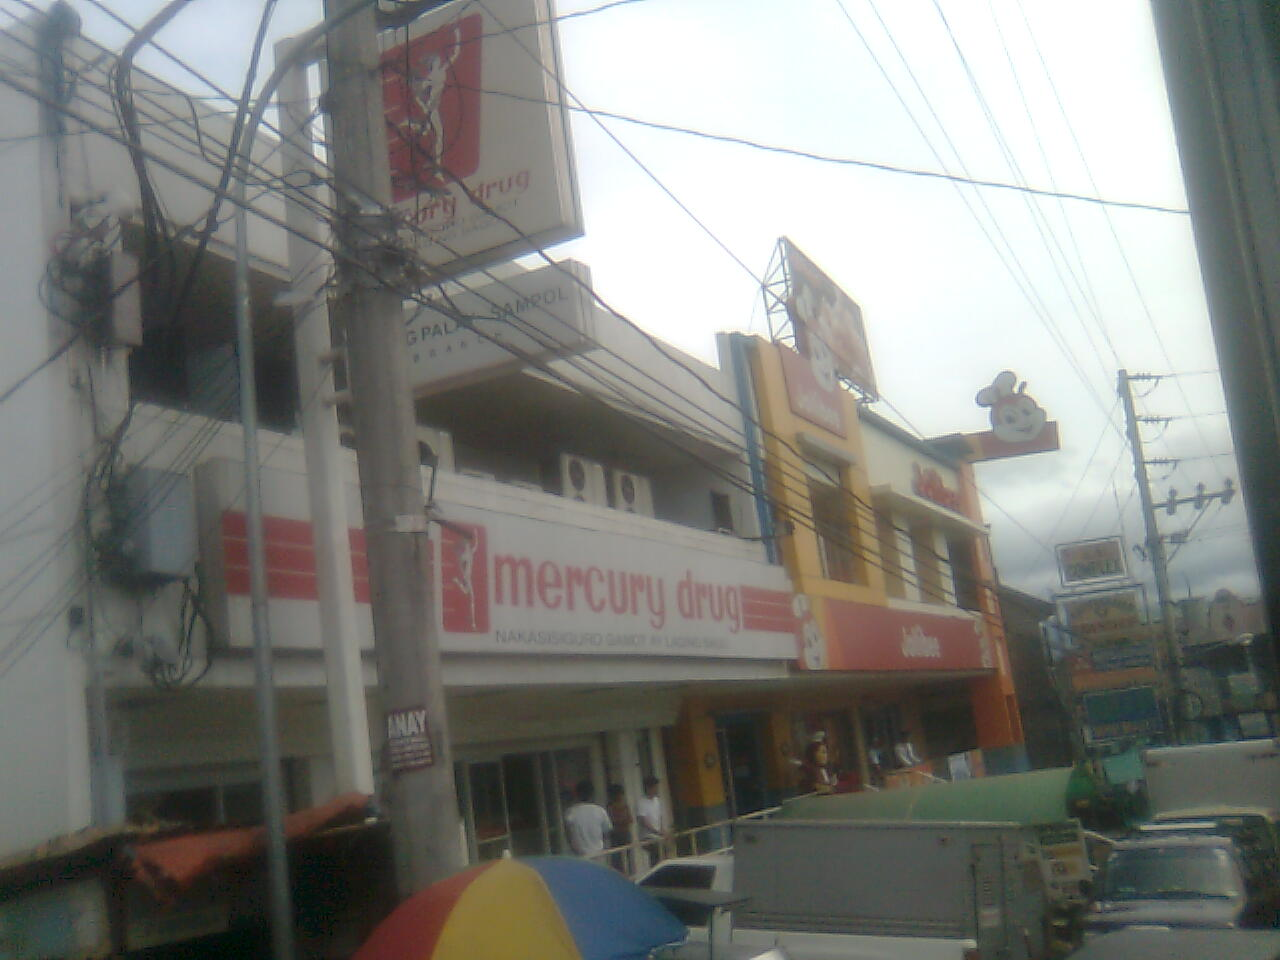 File:Sjdm jollibee n mercury drug.jpg - Wikimedia Commons